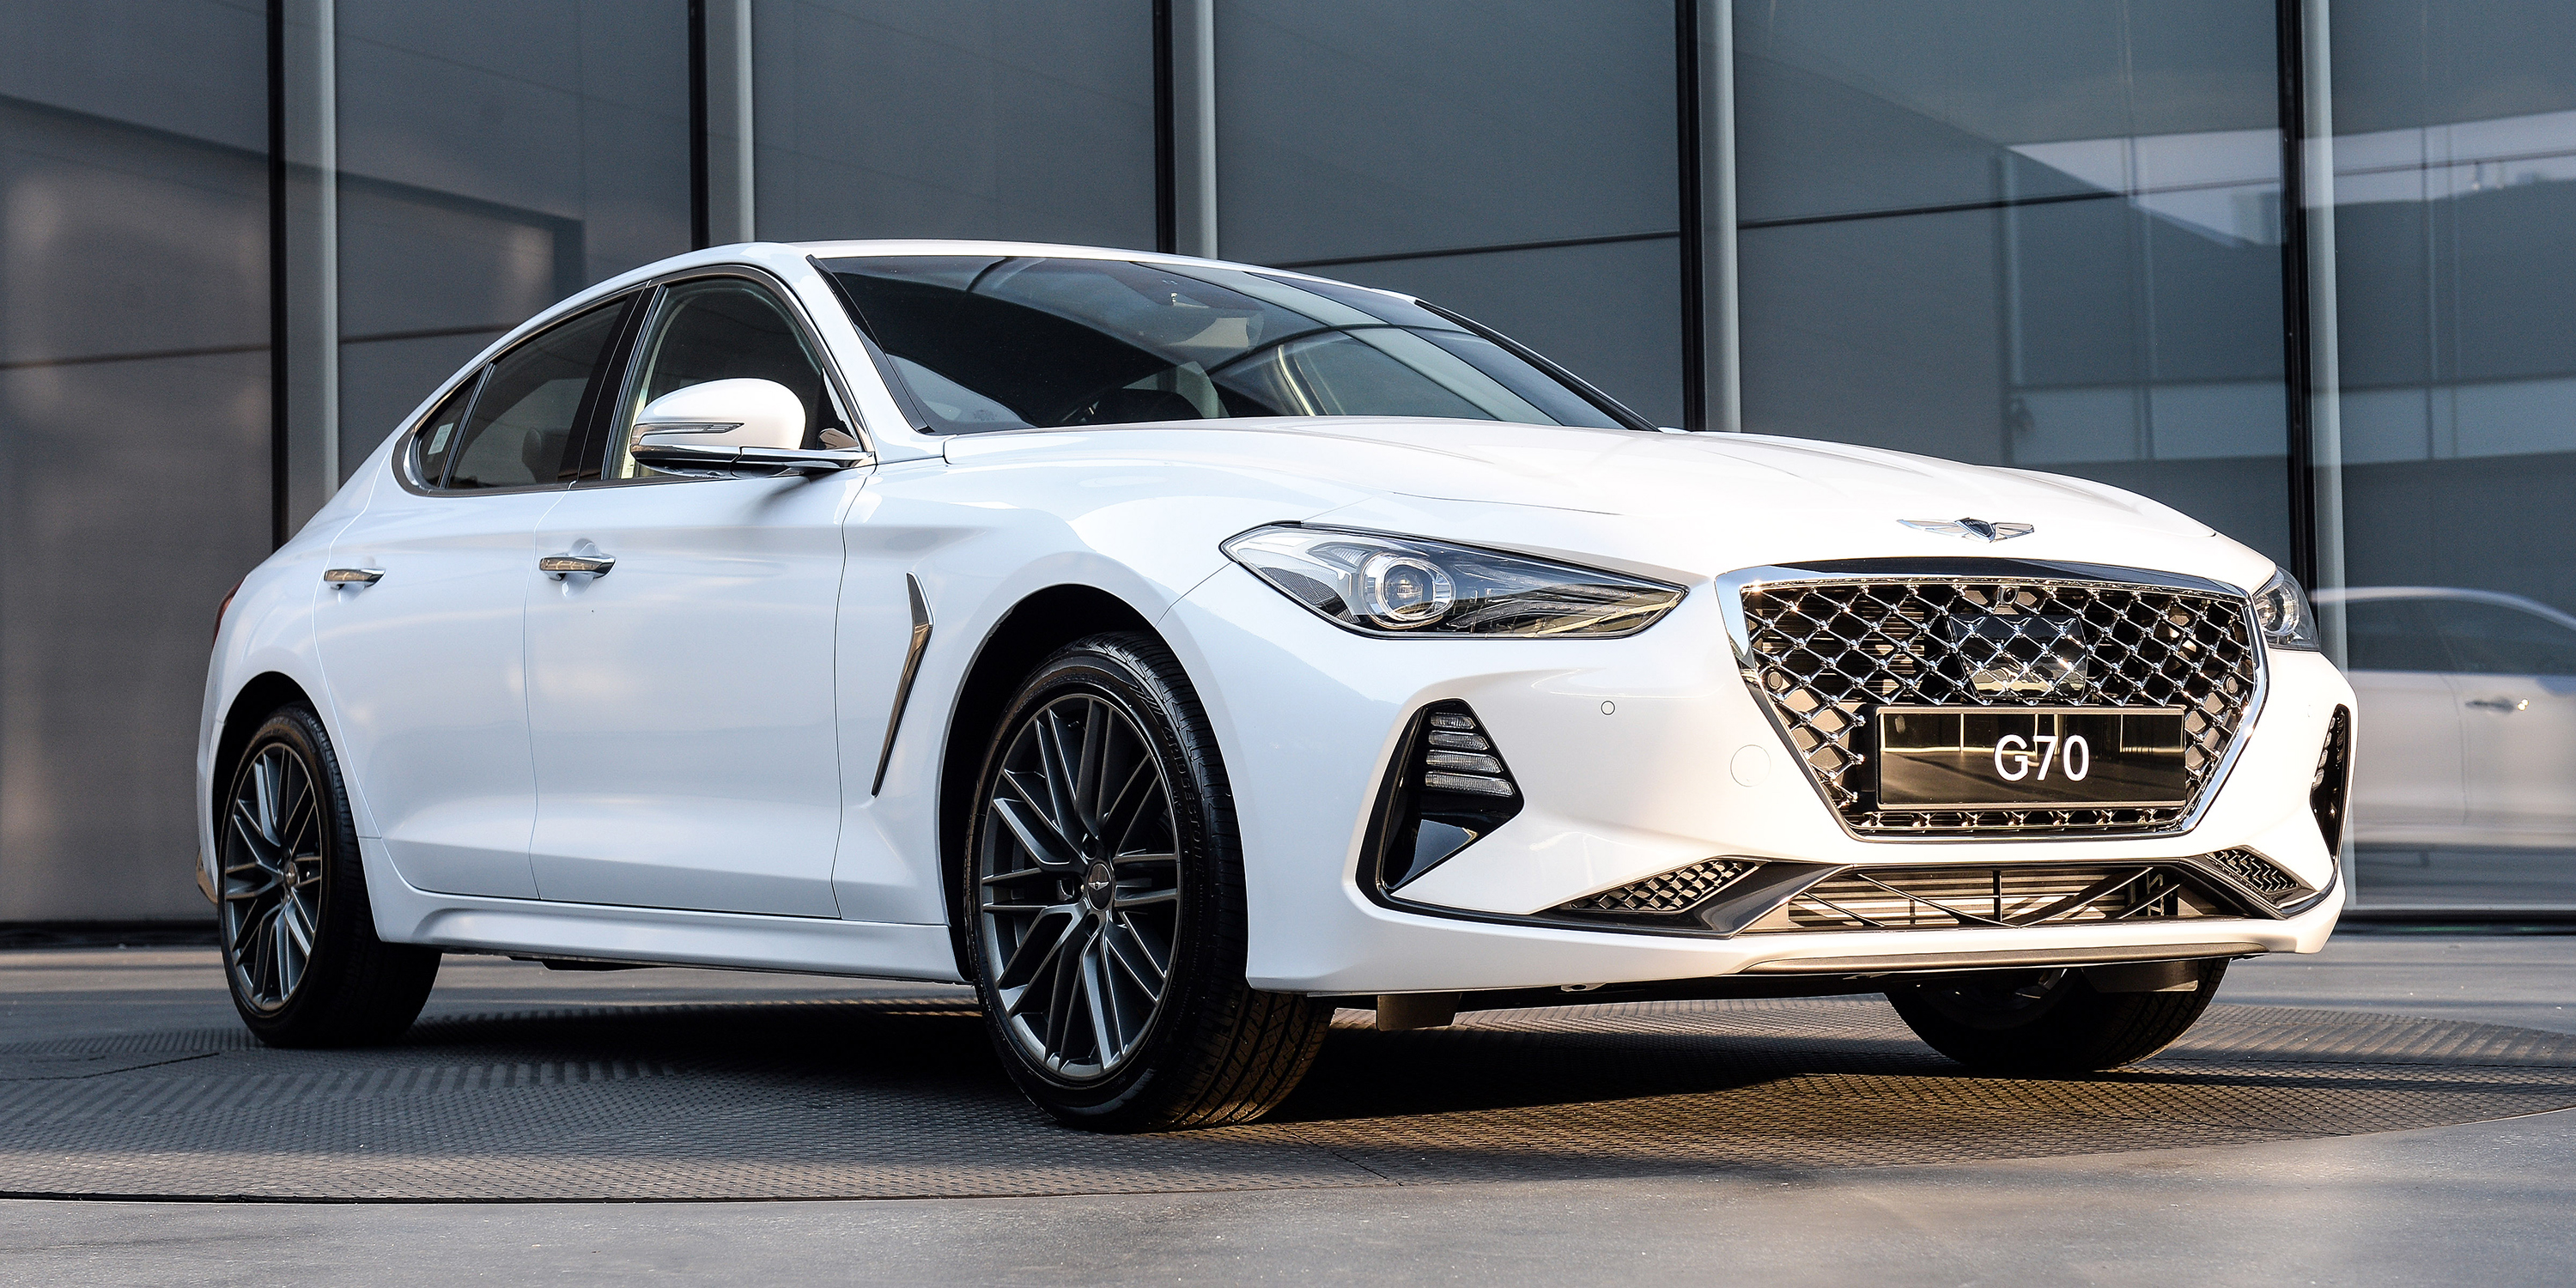 Hyundai Genesis G70 photo 181572